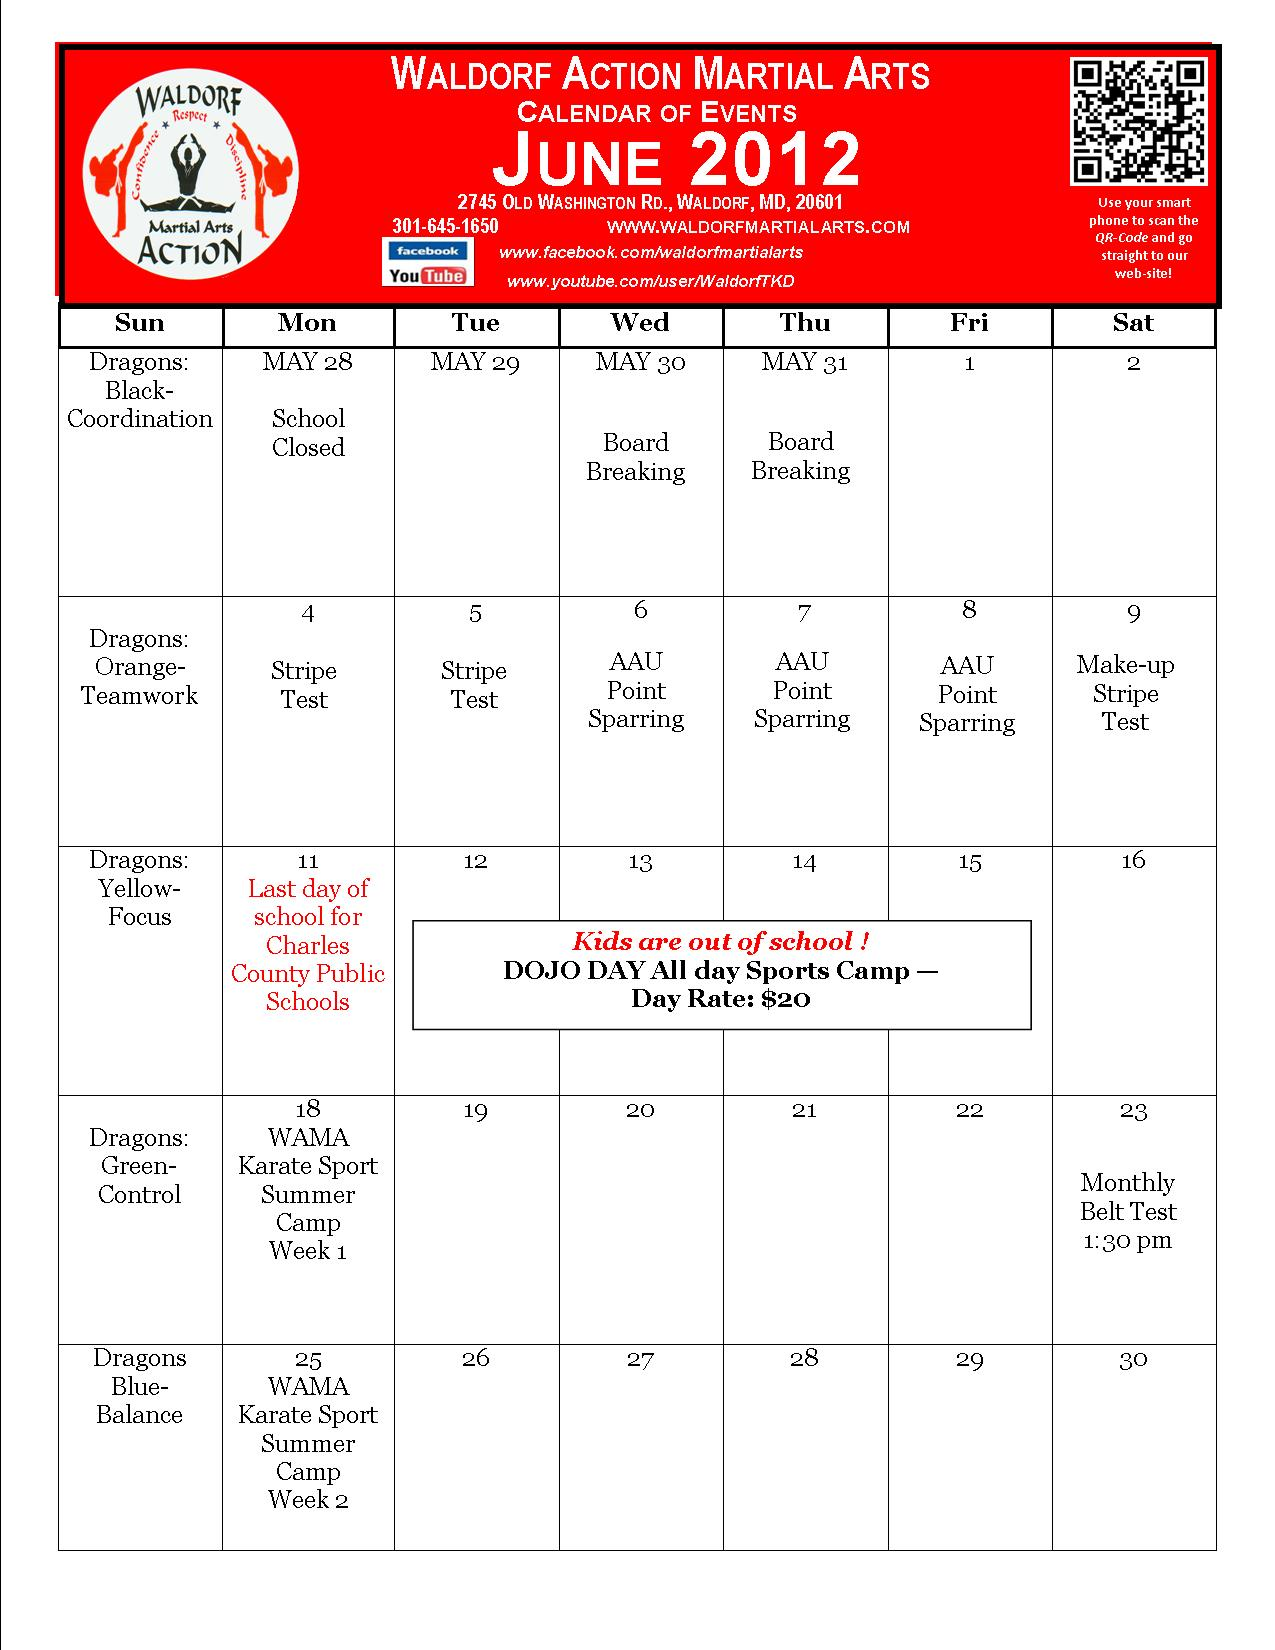 June Calendar Events : Martial arts waldorf